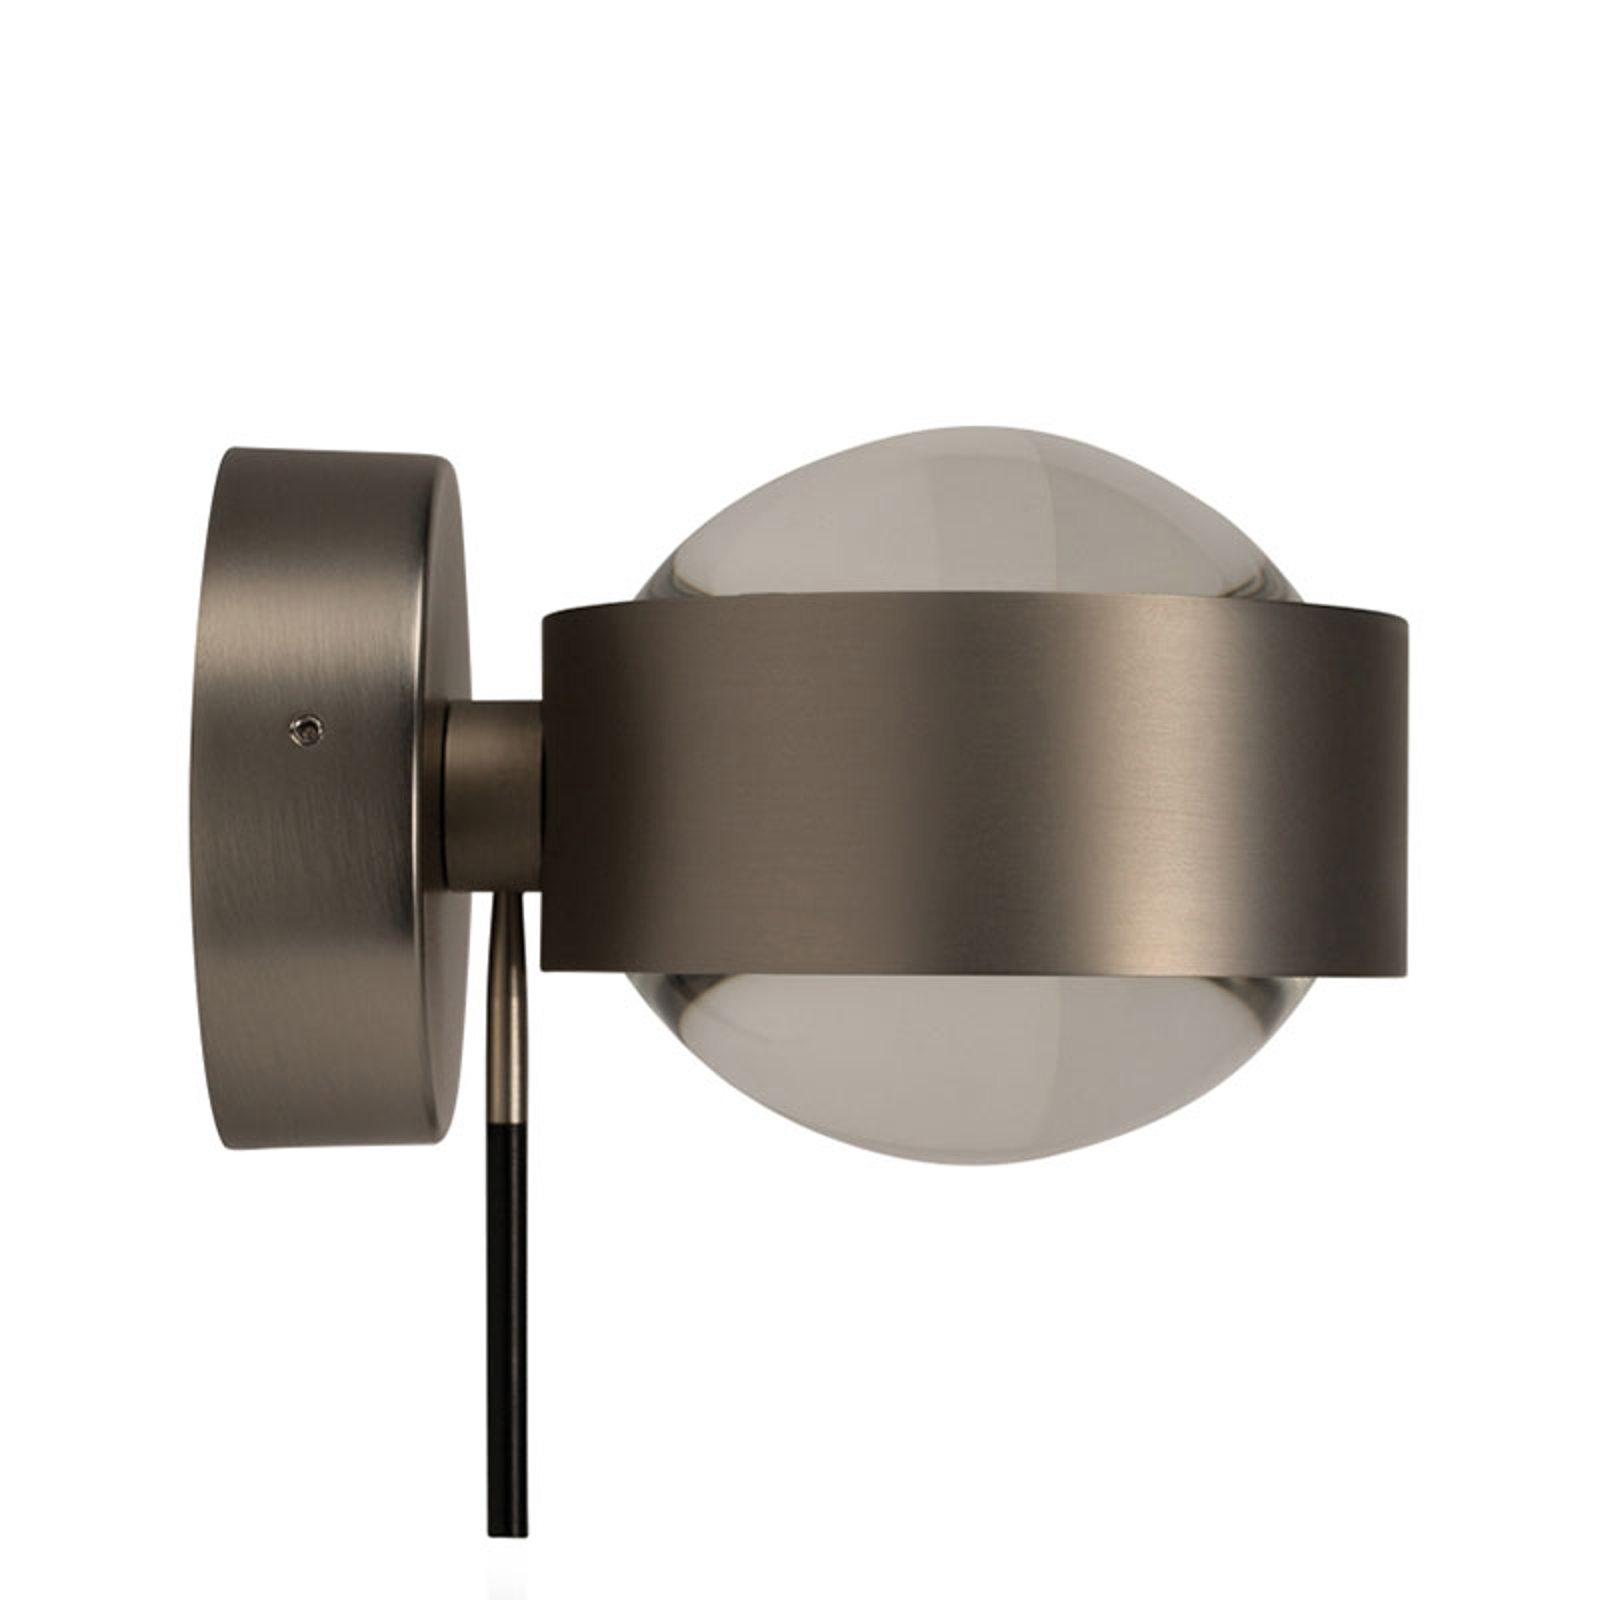 LED-Wandleuchte Puk Wall+, nickel matt